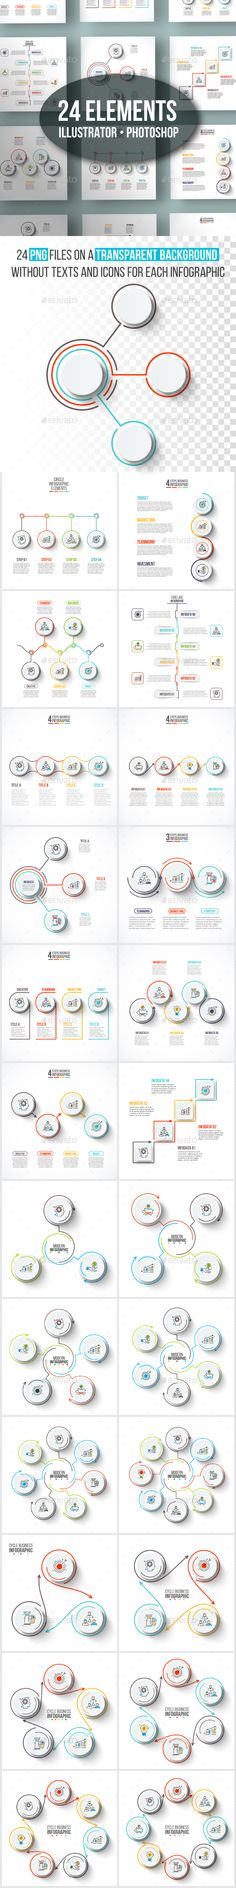 Clean infographic Template Pack - PSD, Vector EPS, AI Illustrator